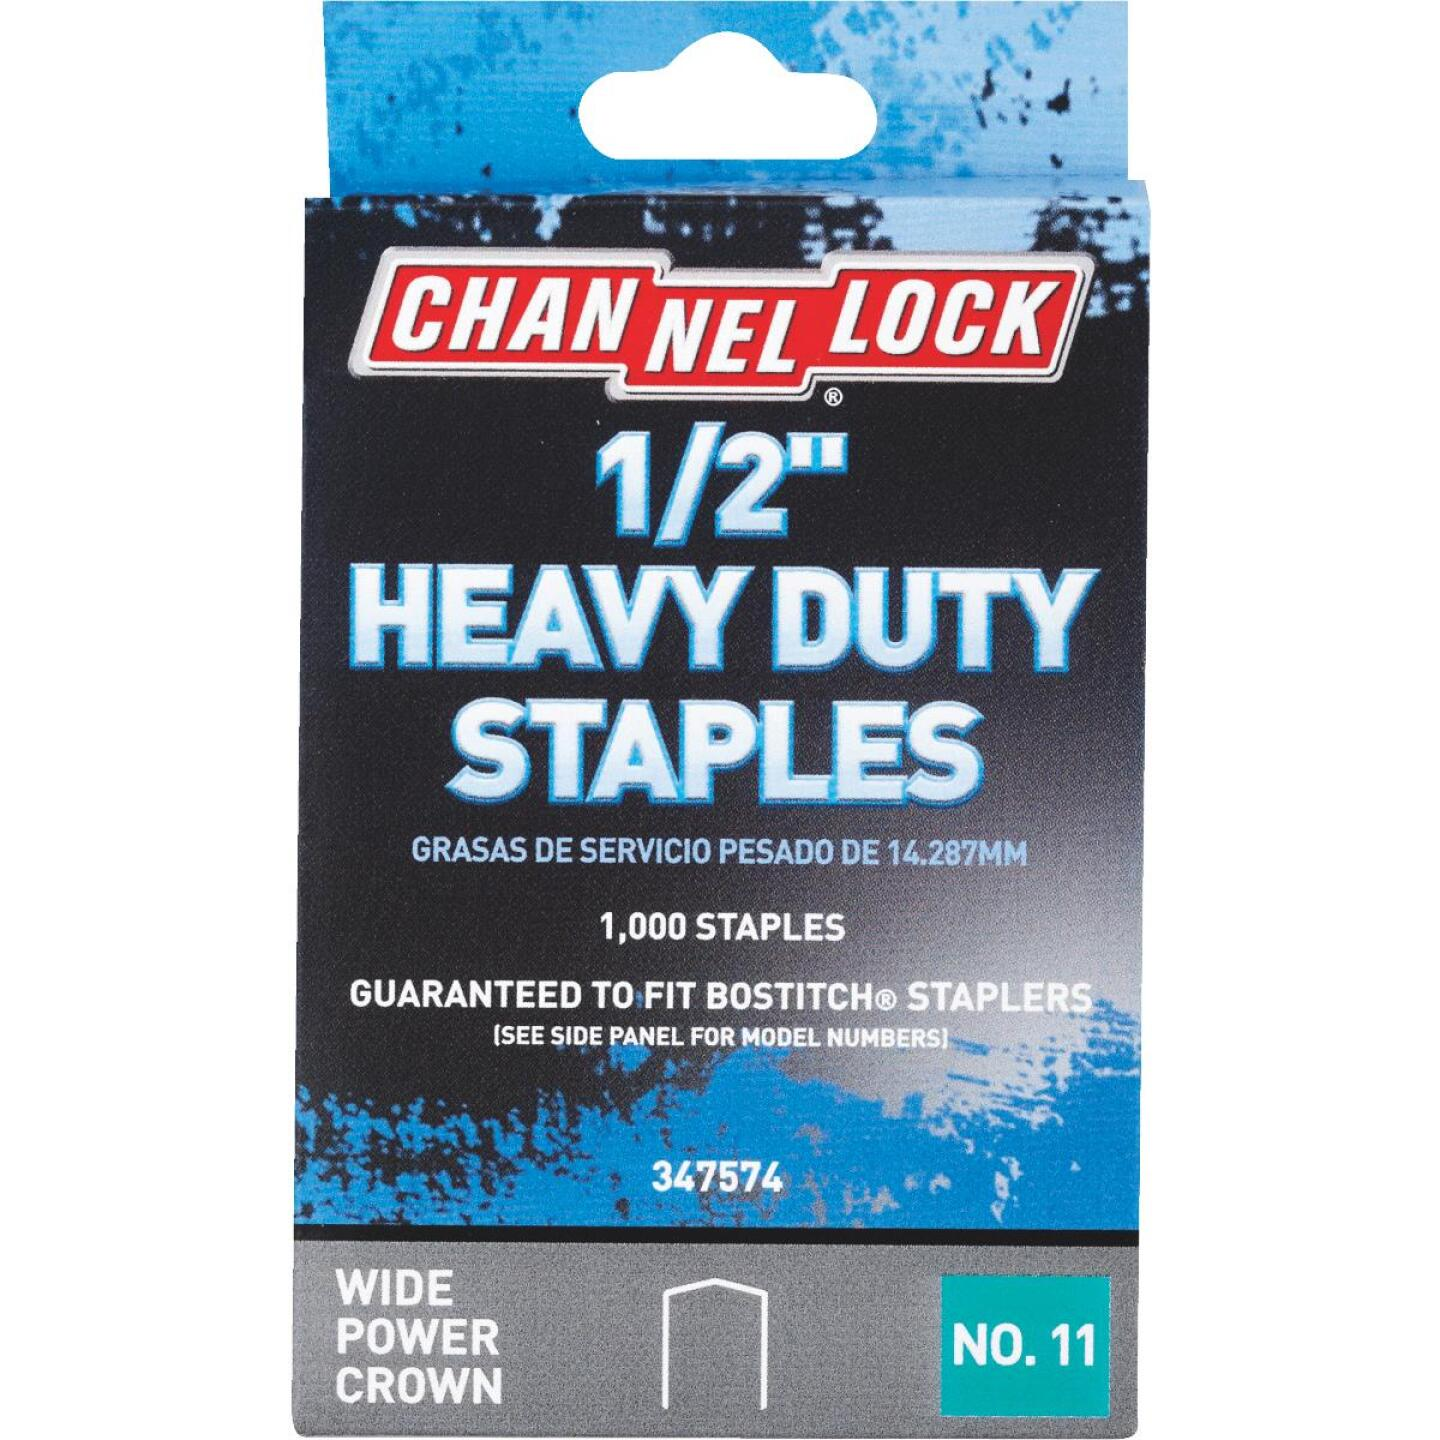 Channellock No. 11 Heavy-Duty Wide Power Crown Staple, 1/2 In. (1000-Pack) Image 1